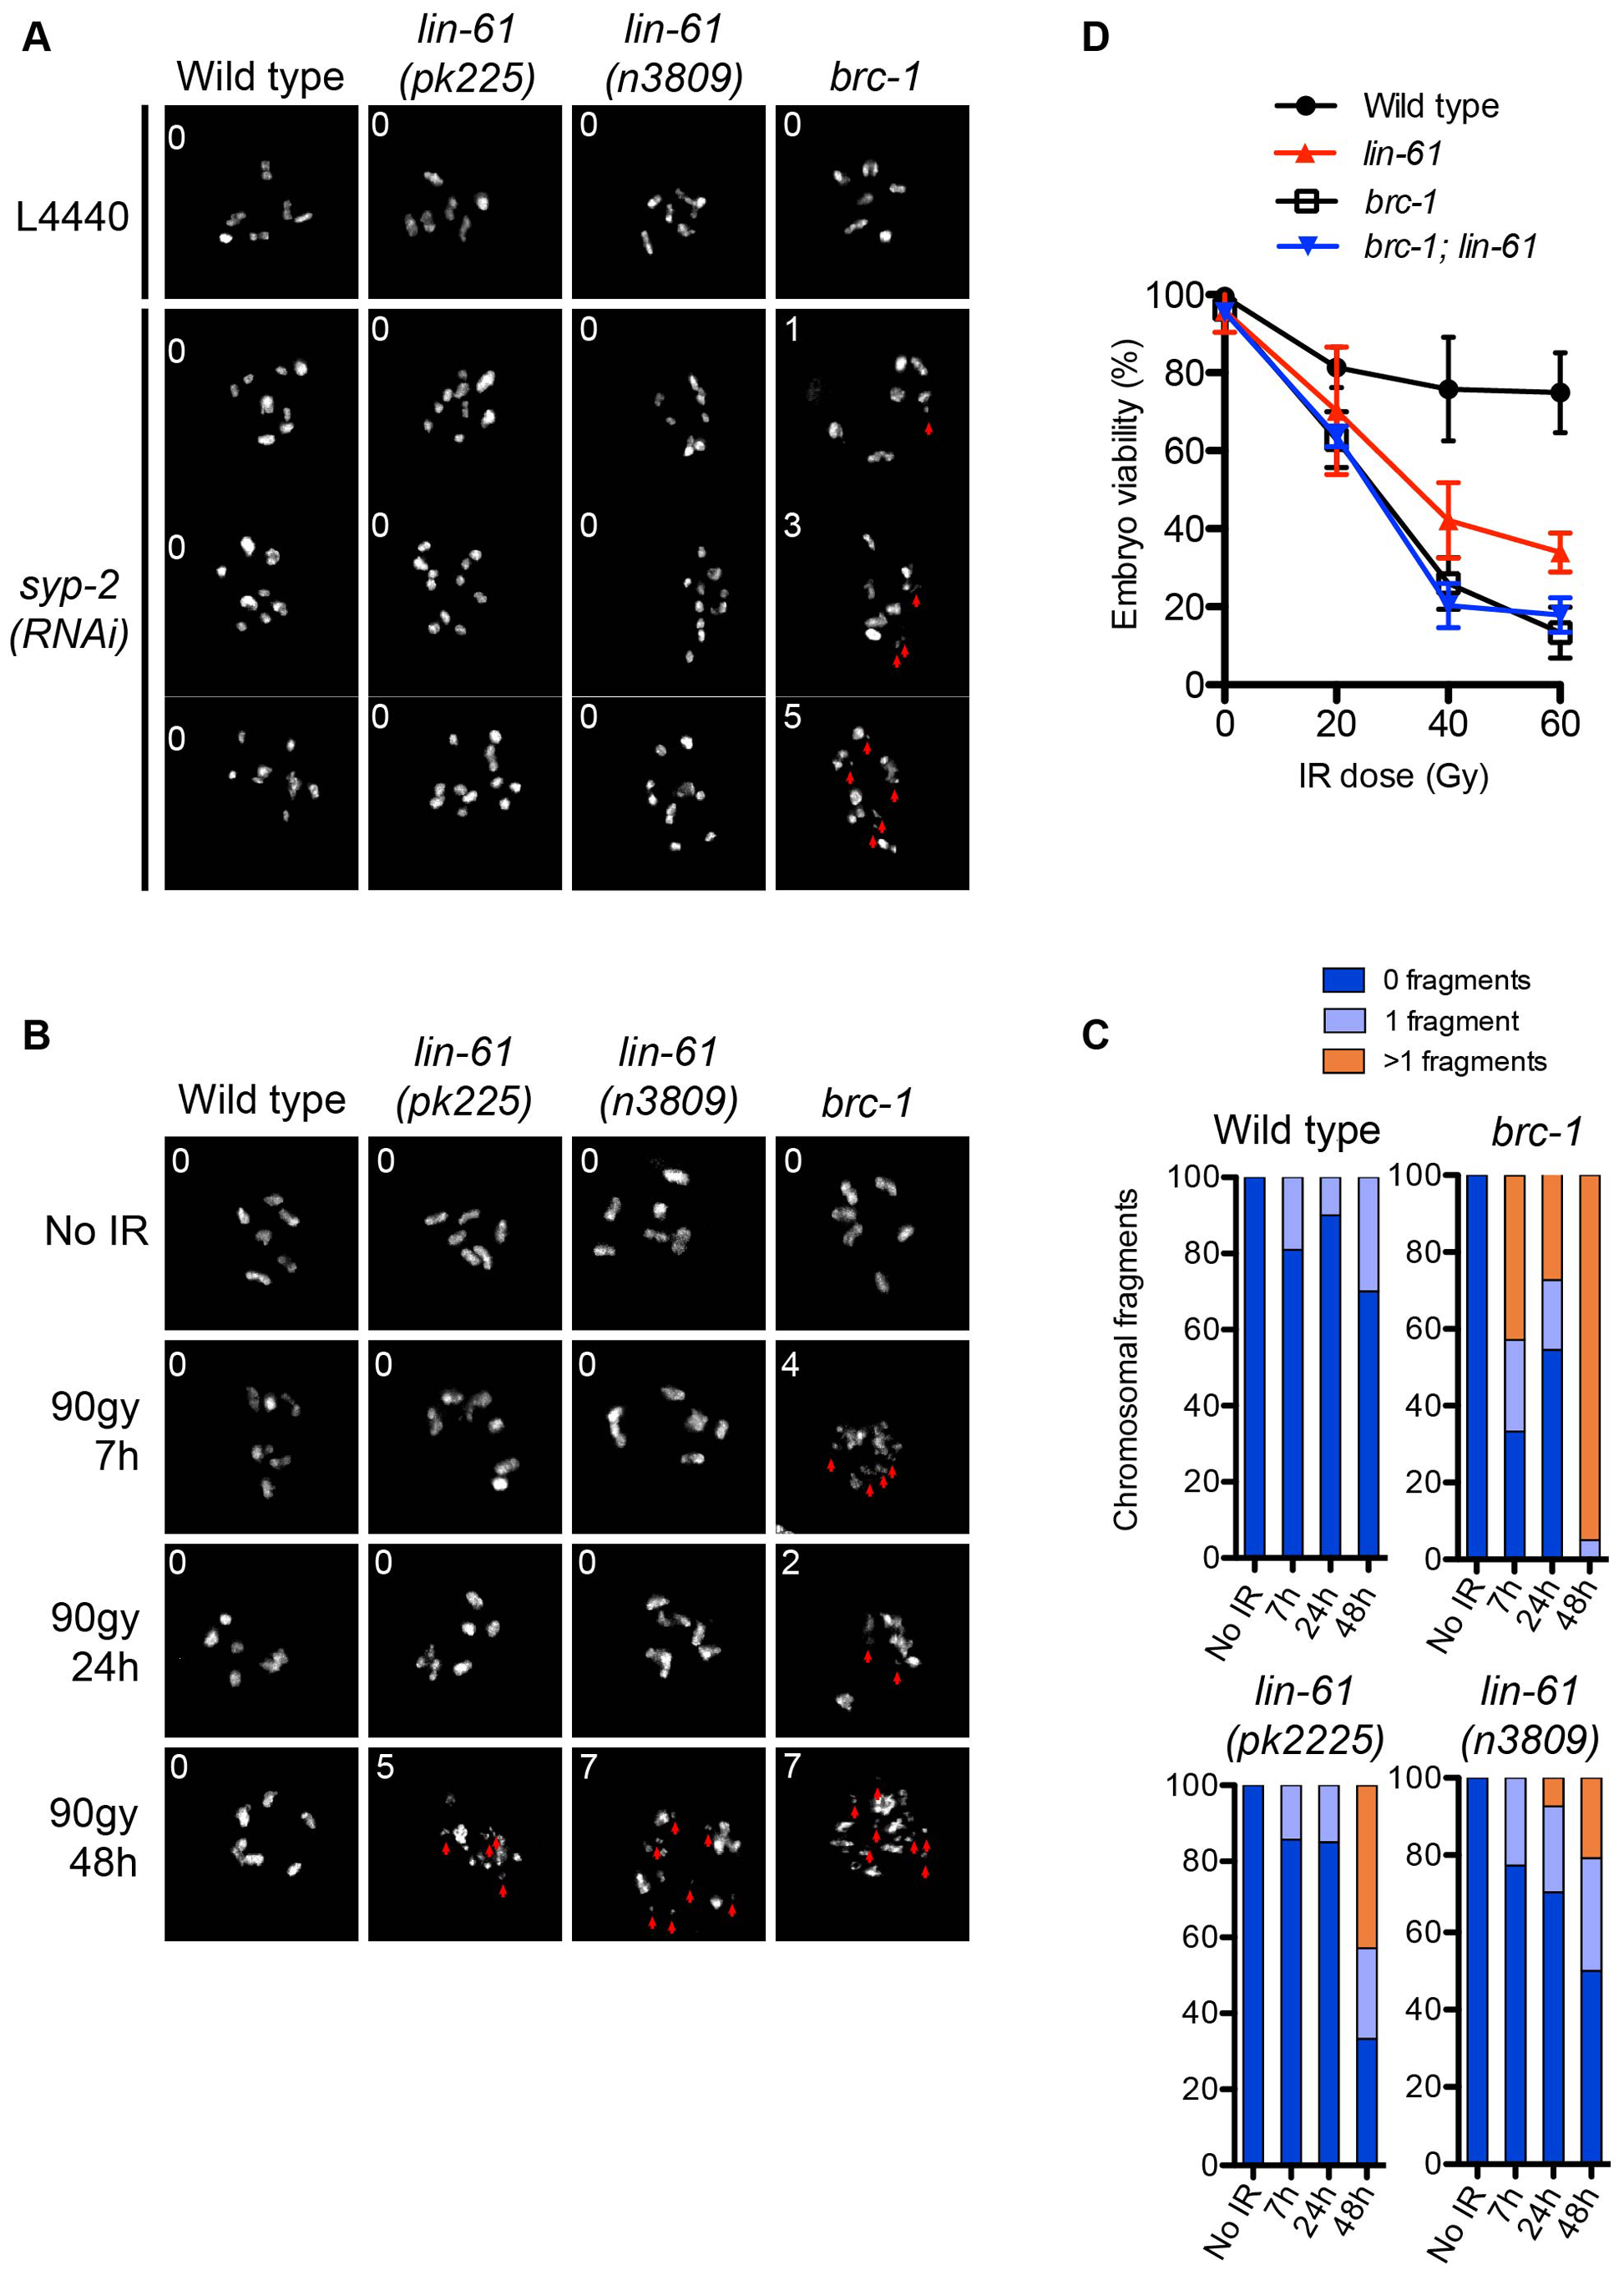 LIN-61 contributes to HR in mitotic cells, but is dispensable for meiotic HR.